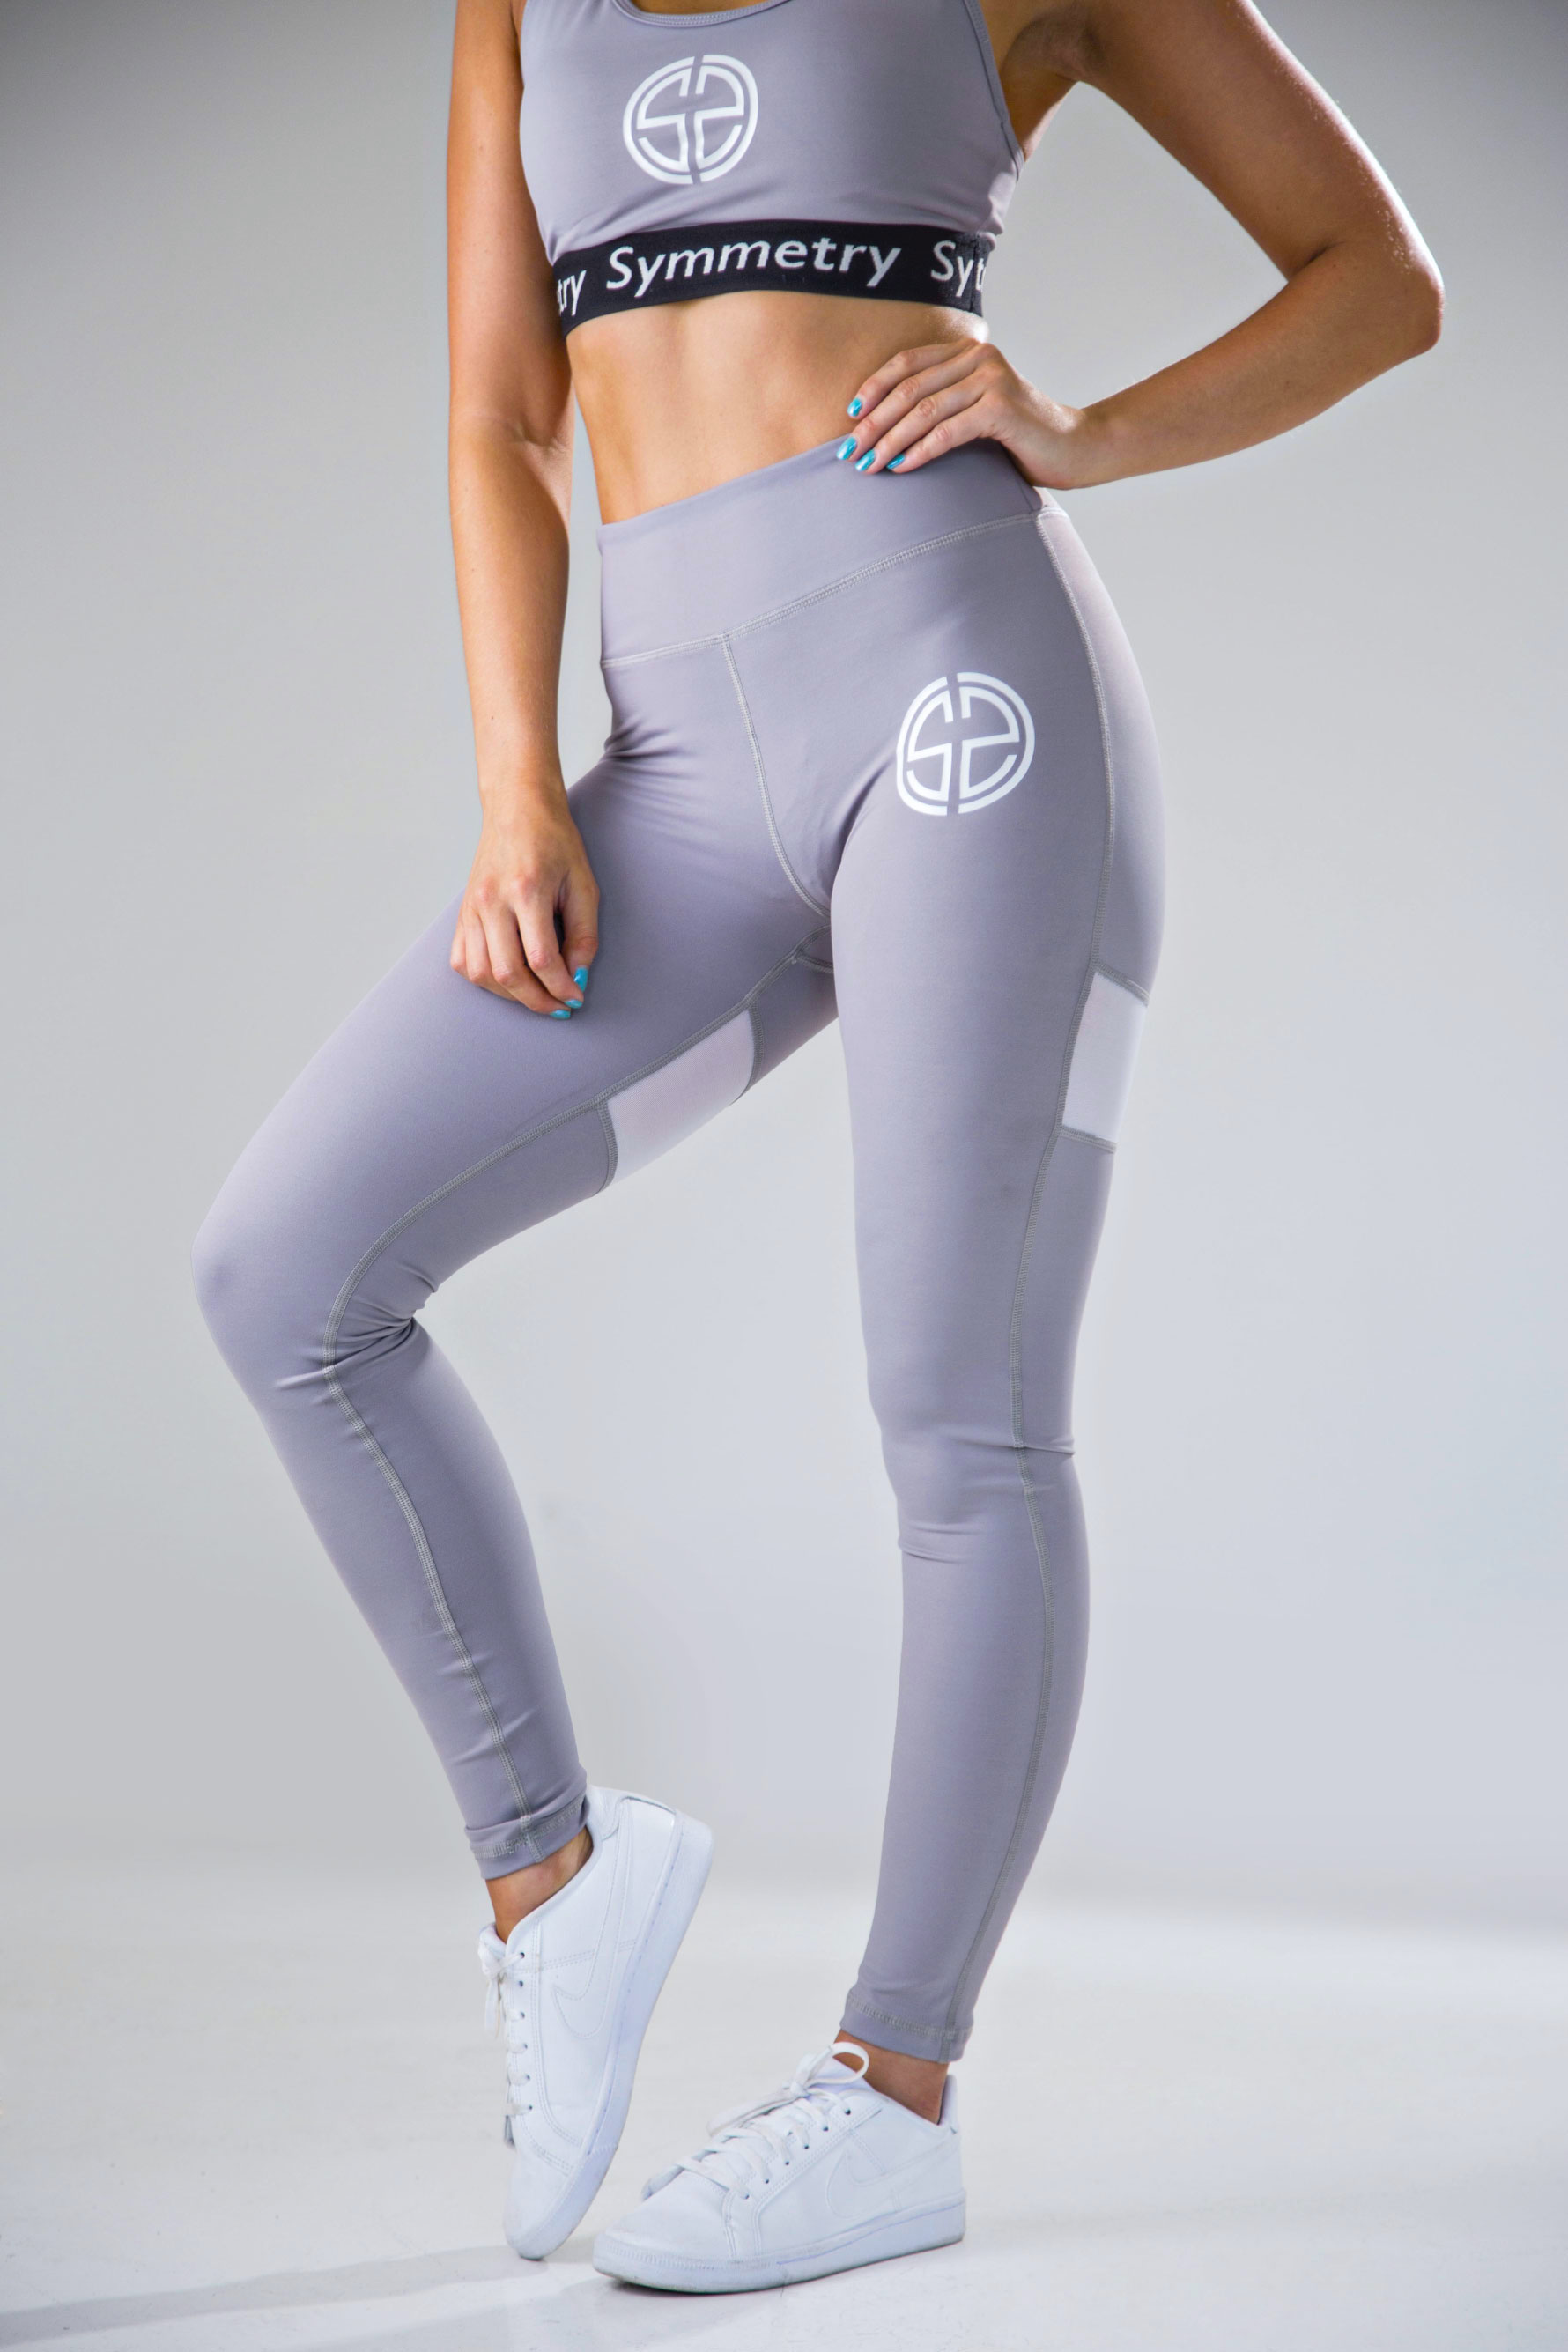 0a77822a5fd4c womens high waisted leggings in grey with mesh panels 2 | womens sports bra  in grey